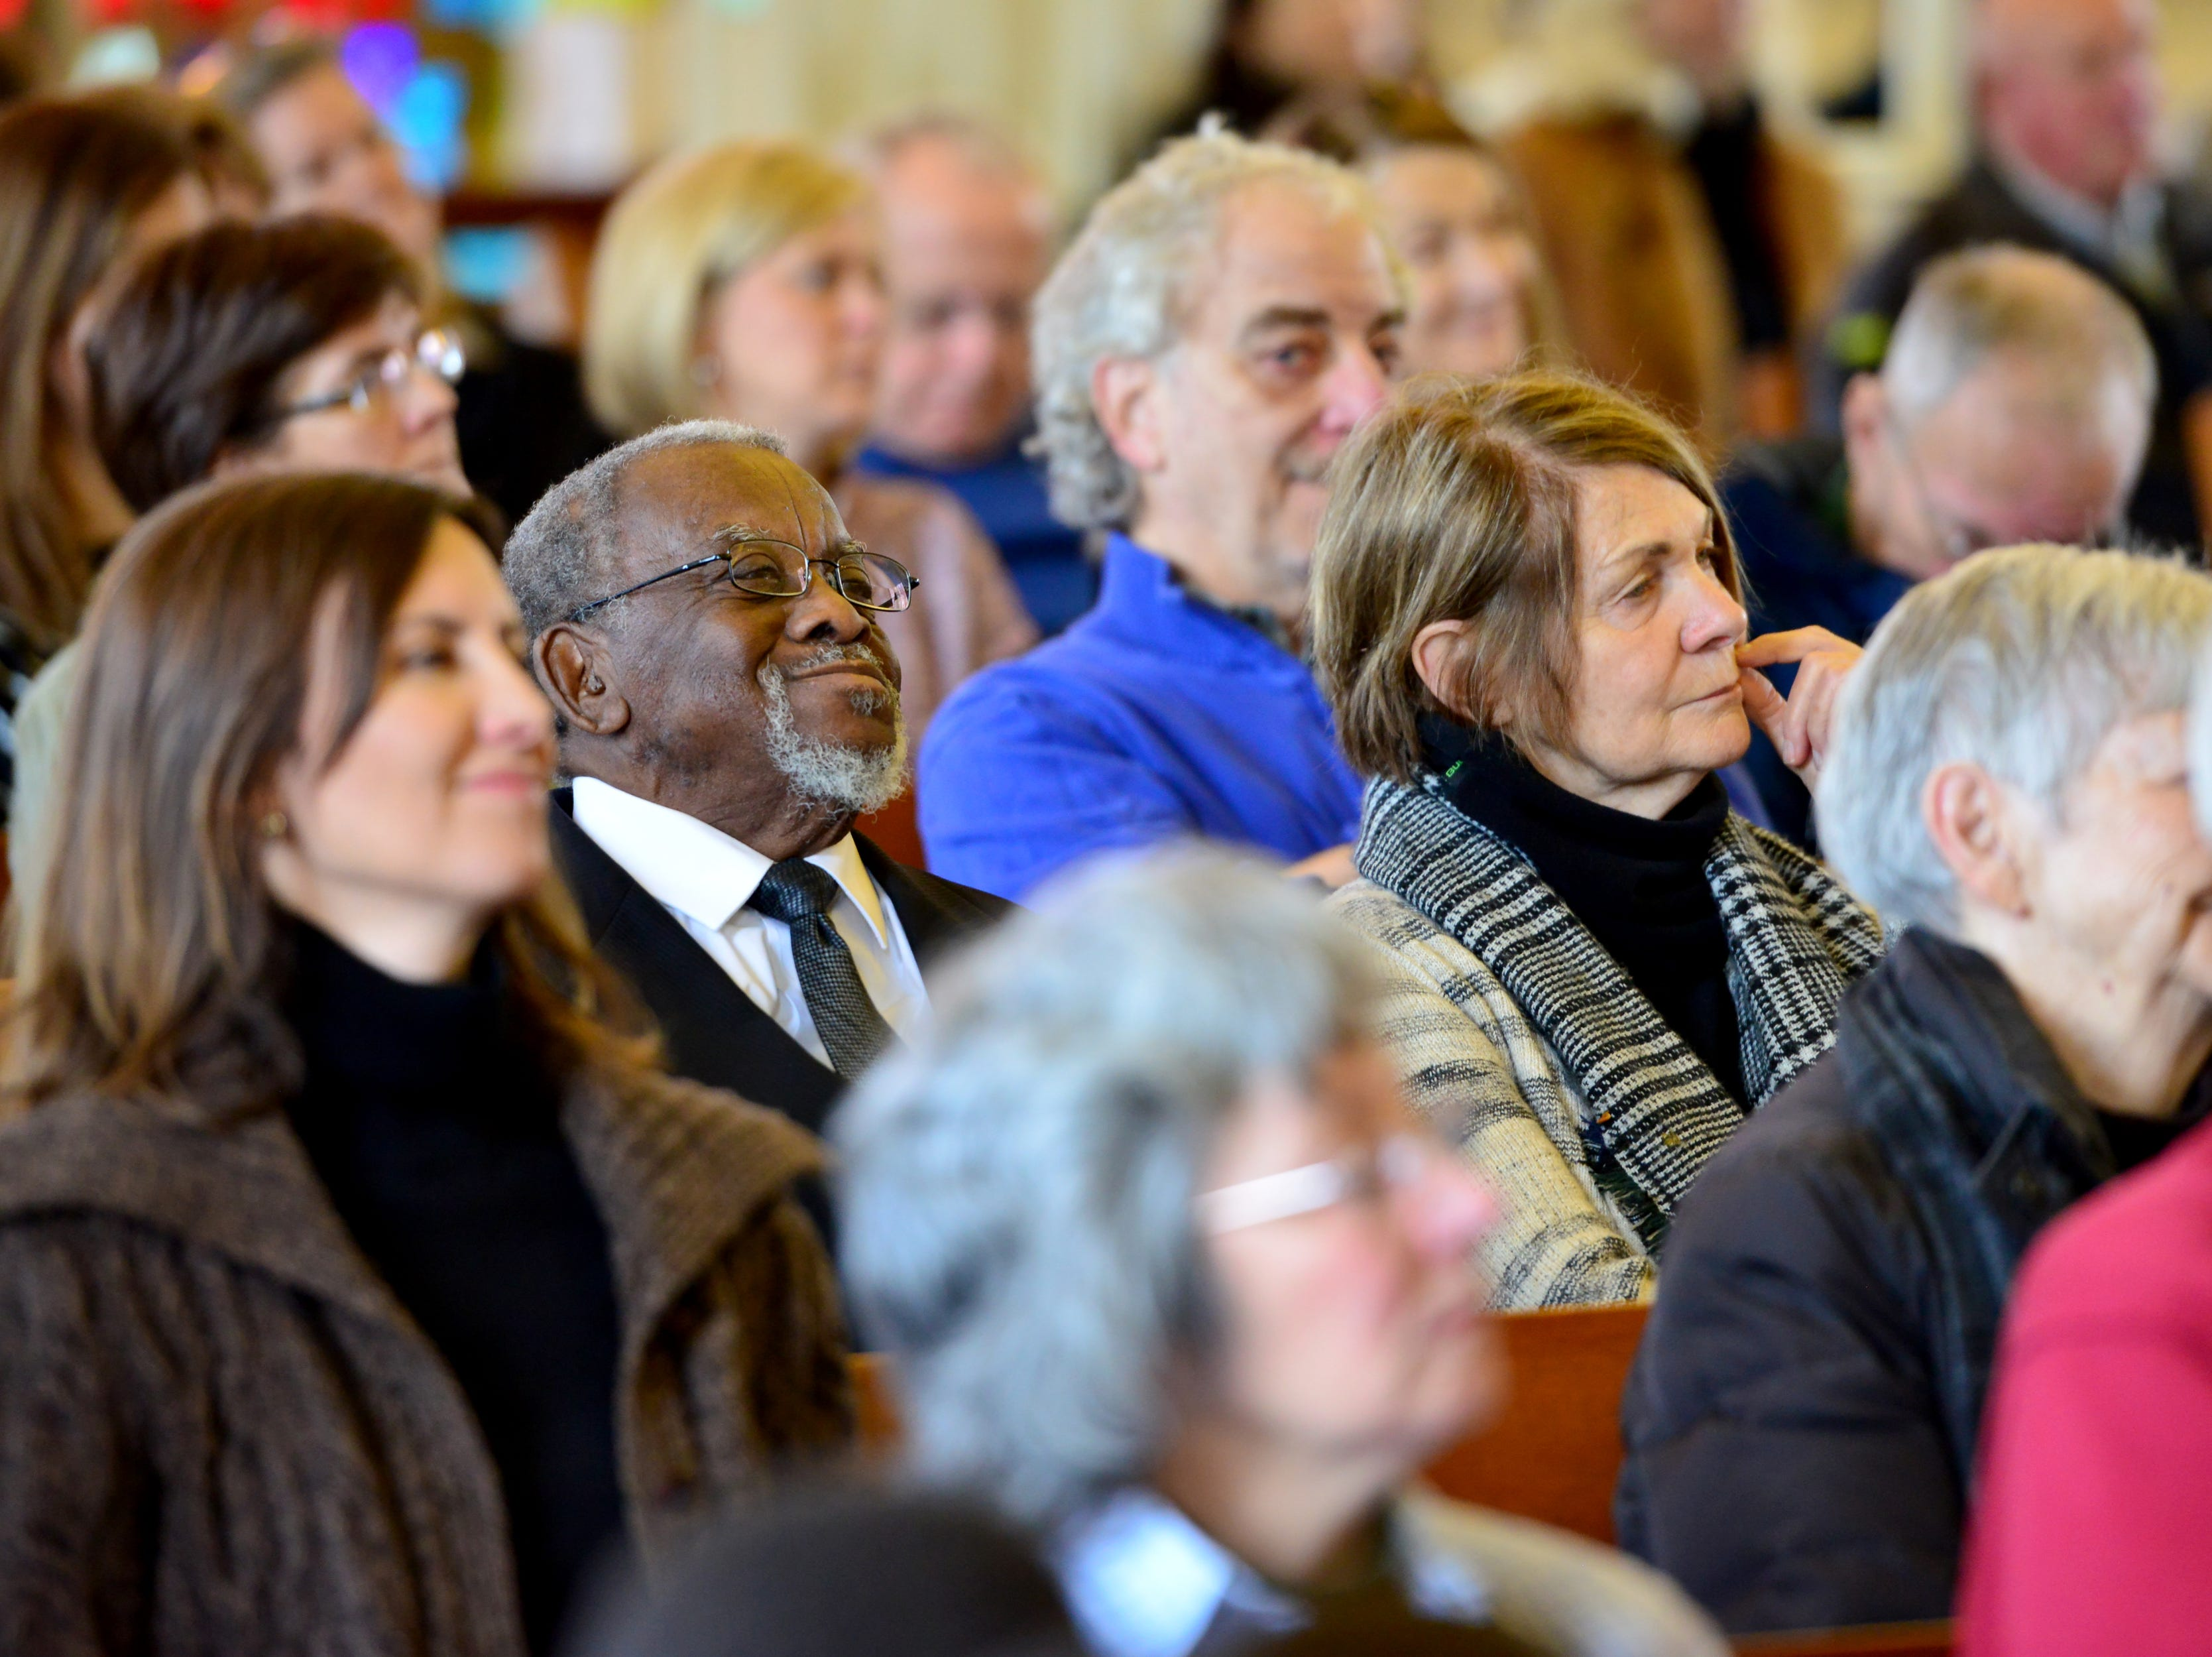 The Ridgewood United Methodist Church held its 37th year of honoring Dr. Martin Luther King, Jr. in Ridgewood, on Monday January 21, 2019. Area residents and religious leaders from many faiths attended the annual event.